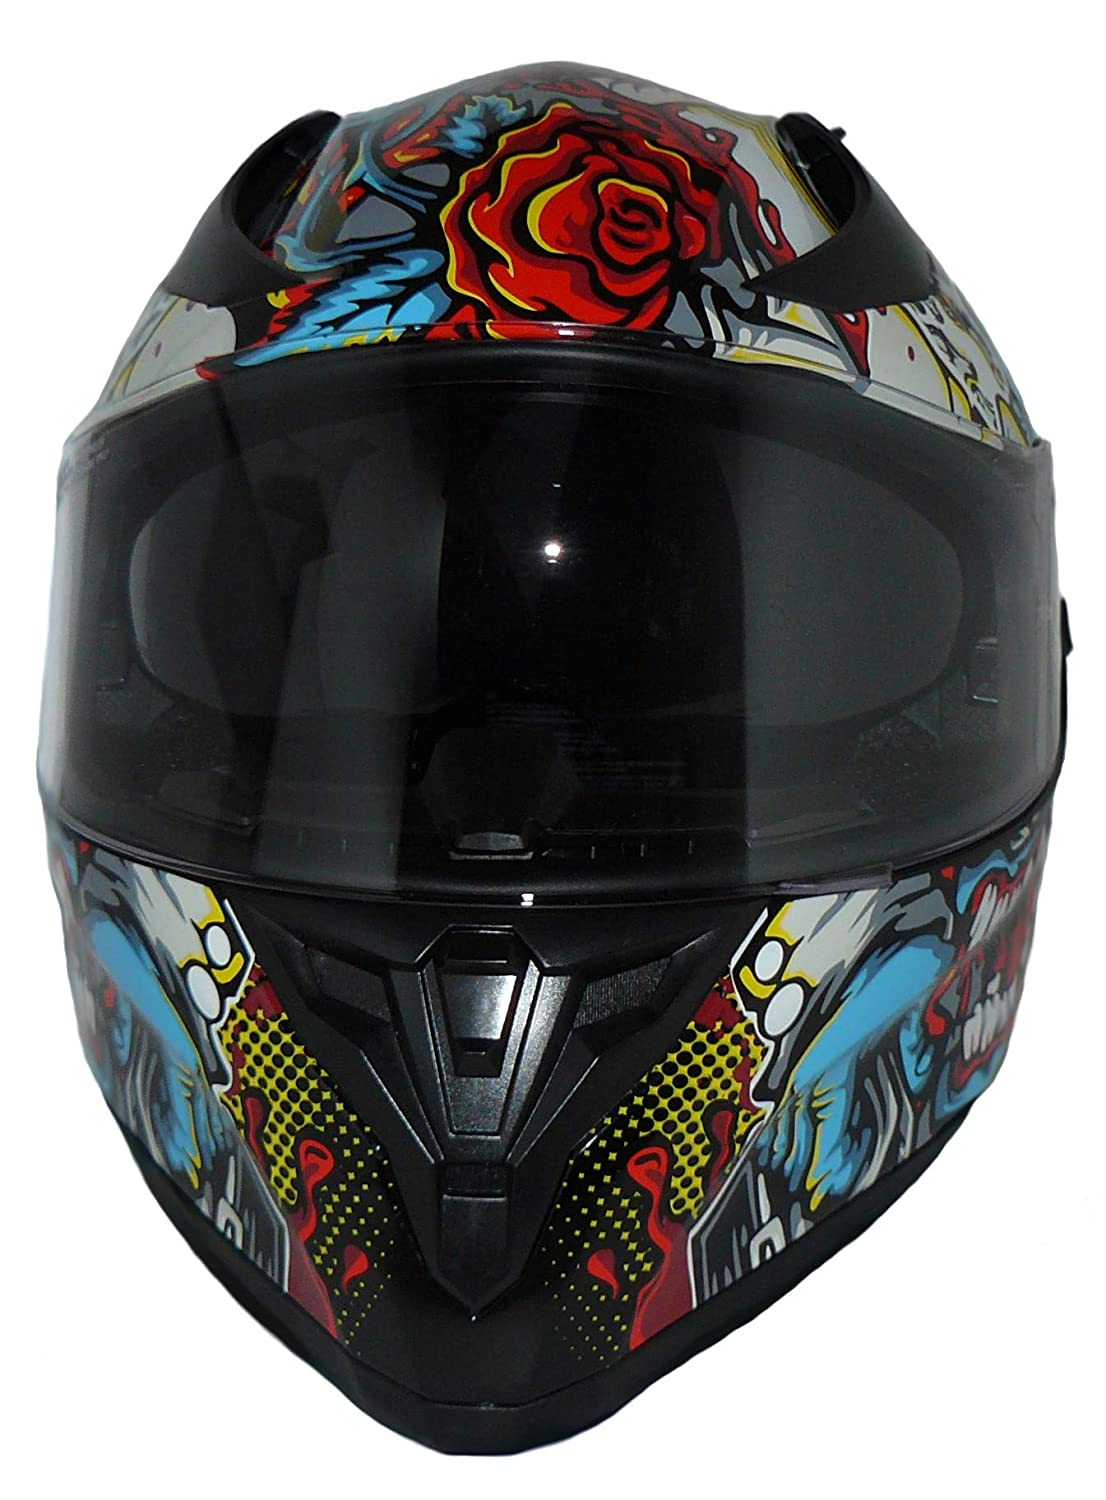 Protectwear V128-Mu-Xl Casco Integral Casco Completo V128-Mu Xl Multicolor